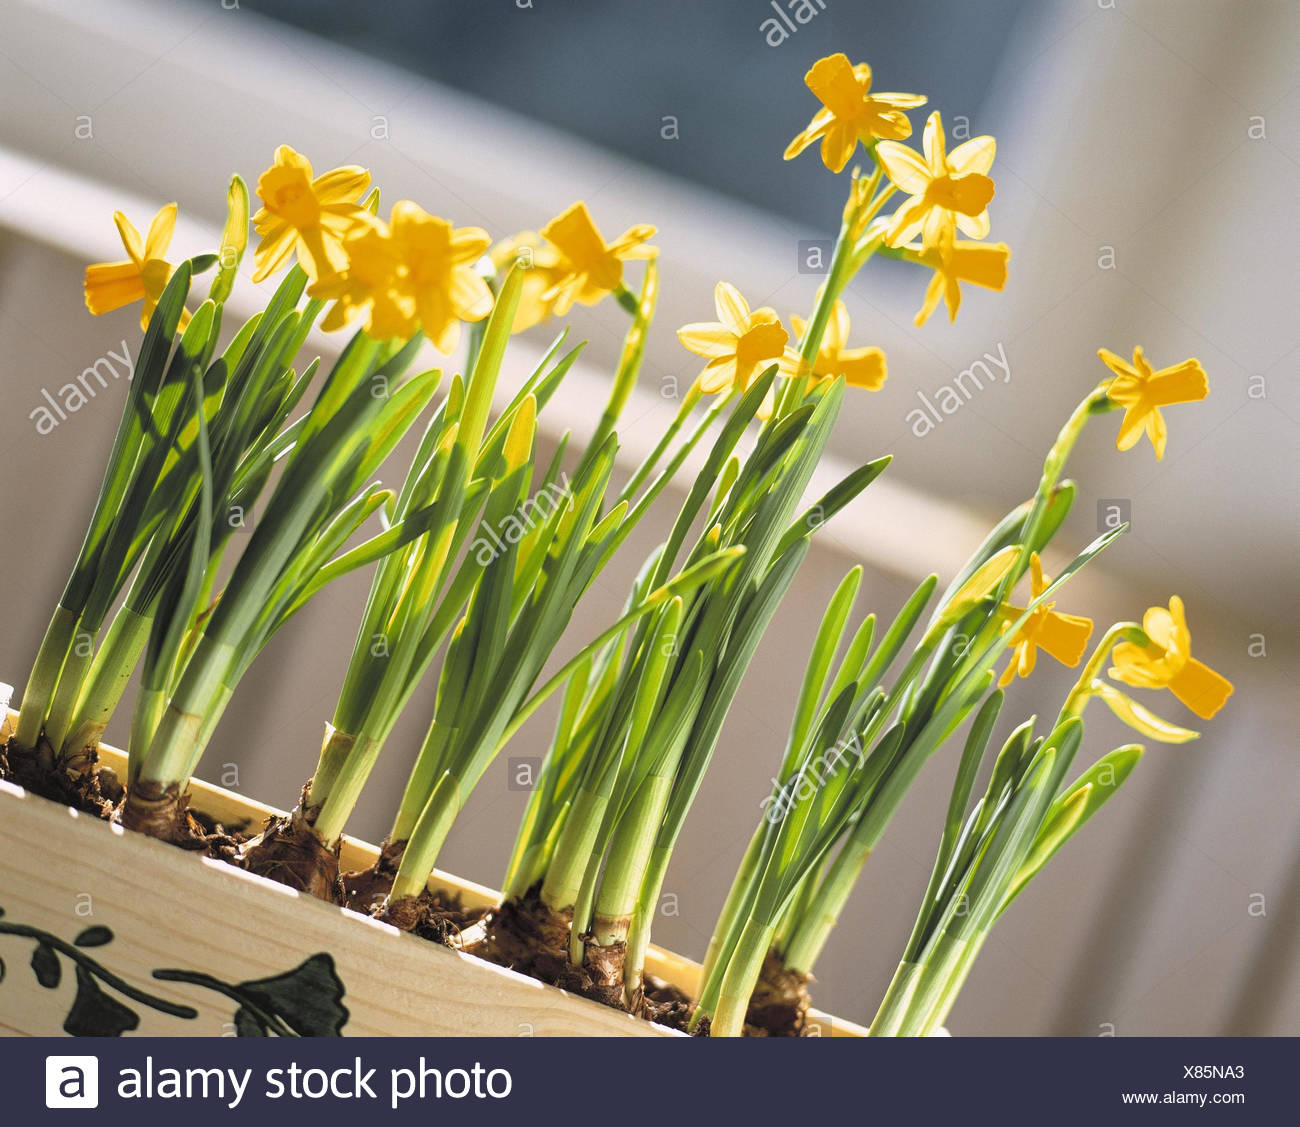 Daffodils Spring Planter Stock Photos Daffodils Spring Planter